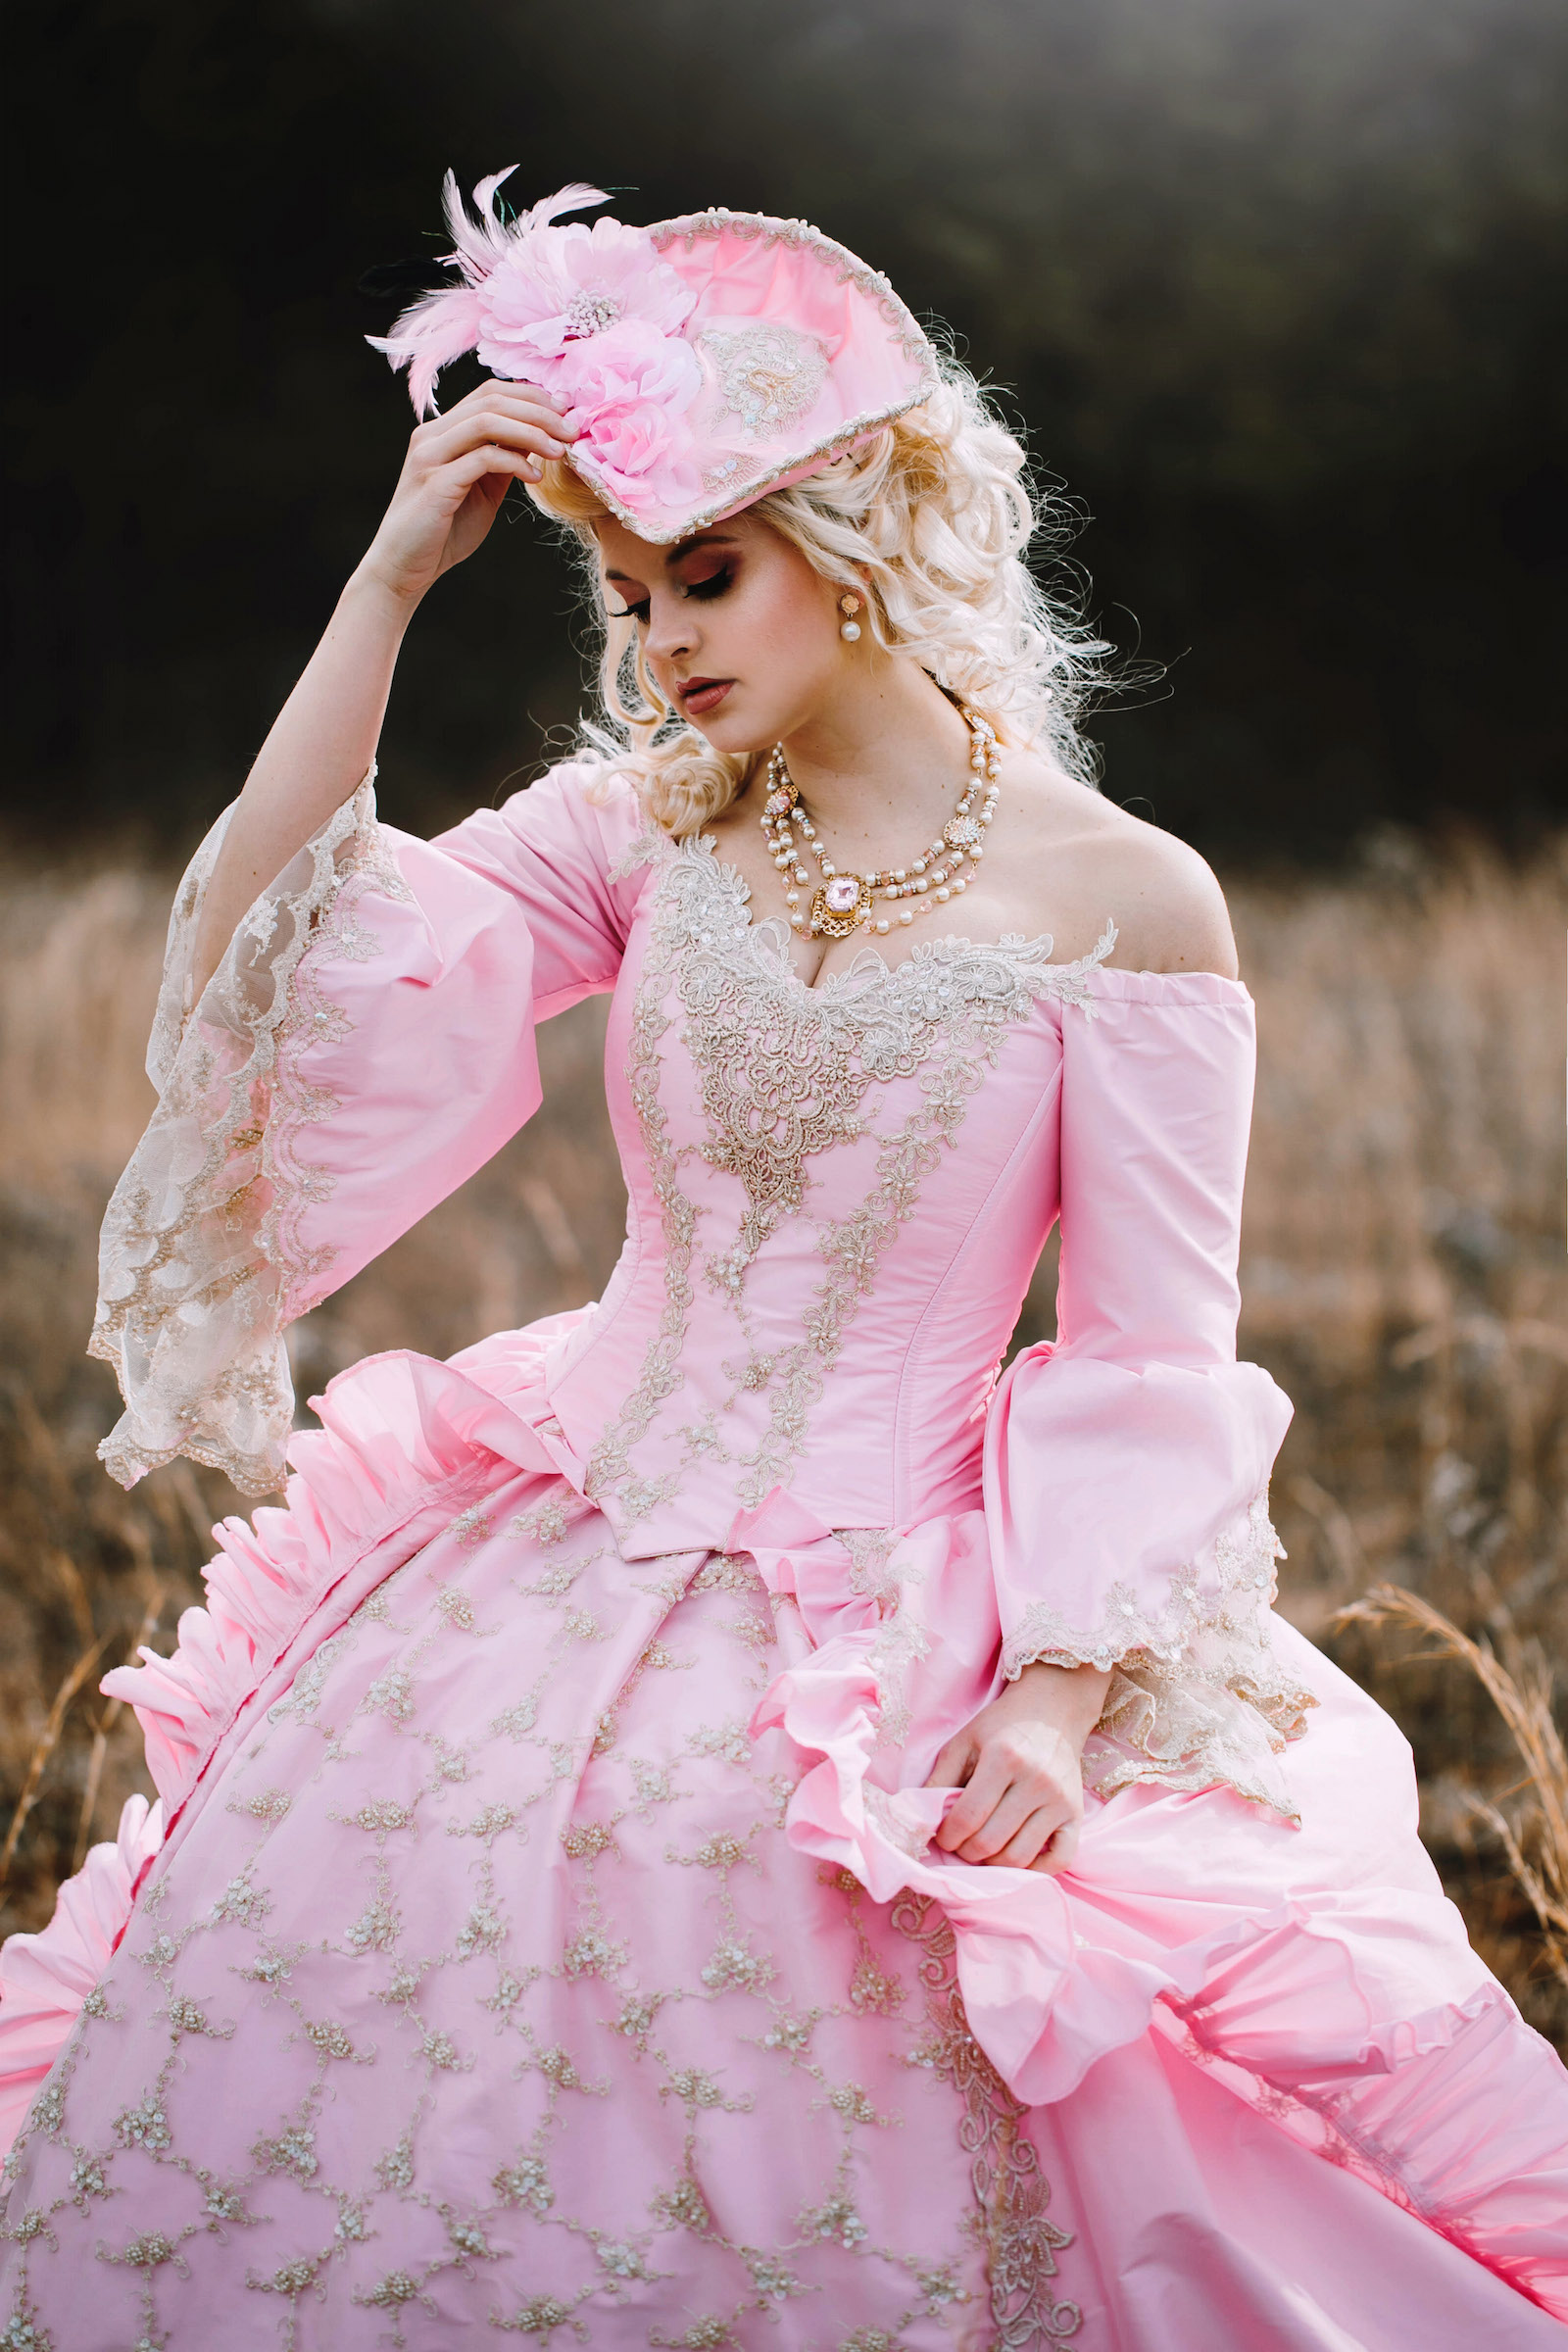 Medieval wedding gowns marie antoinette gowns gothic wedding gowns renaissance victorian marie antoinette gowns rococo 18th century etcrfect for theme weddings sca stage costumes and parties junglespirit Choice Image